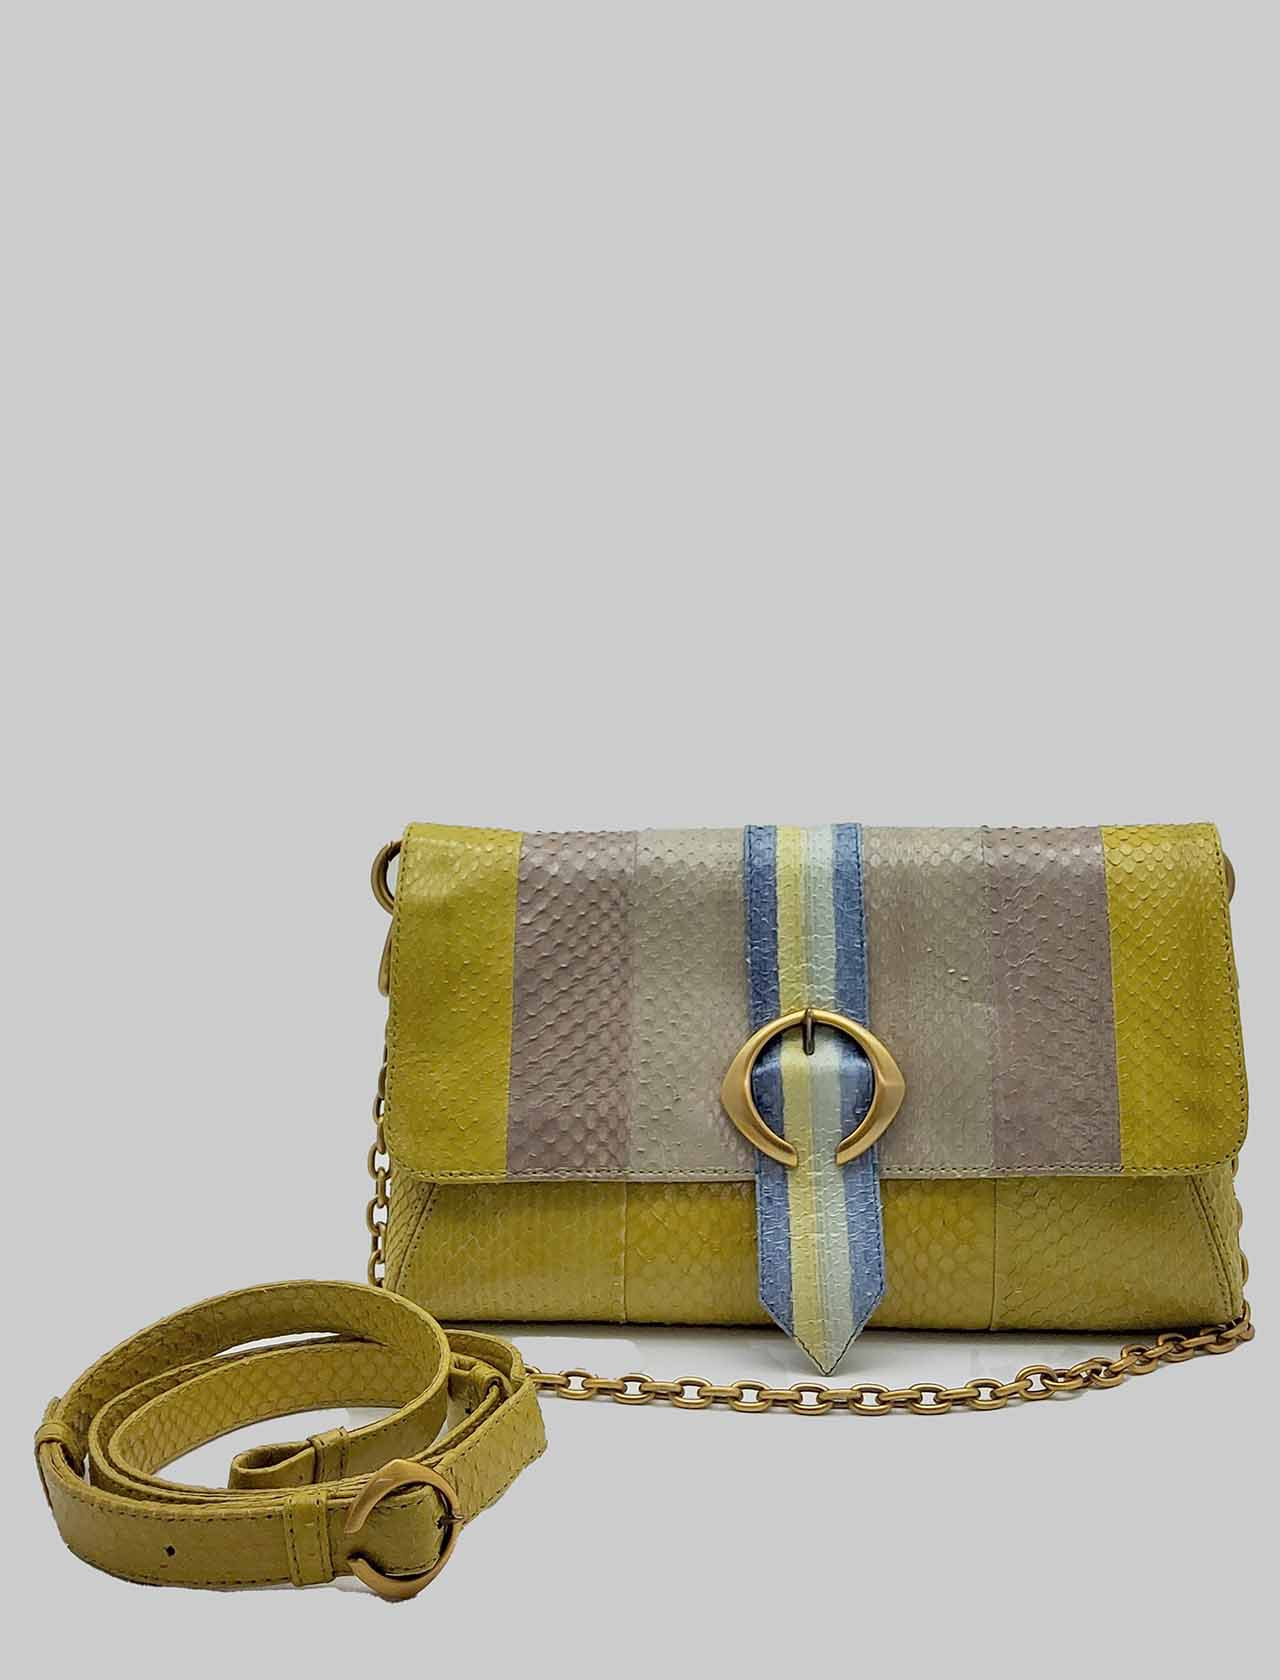 Woman Medium Shoulder Bag Exotic Stripes in Blue and Green Multicolor Wips with Gold Chain and Removable and Adjustable Leather Shoulder Strap Maliparmi | Bags and backpacks | BE00120142480B99